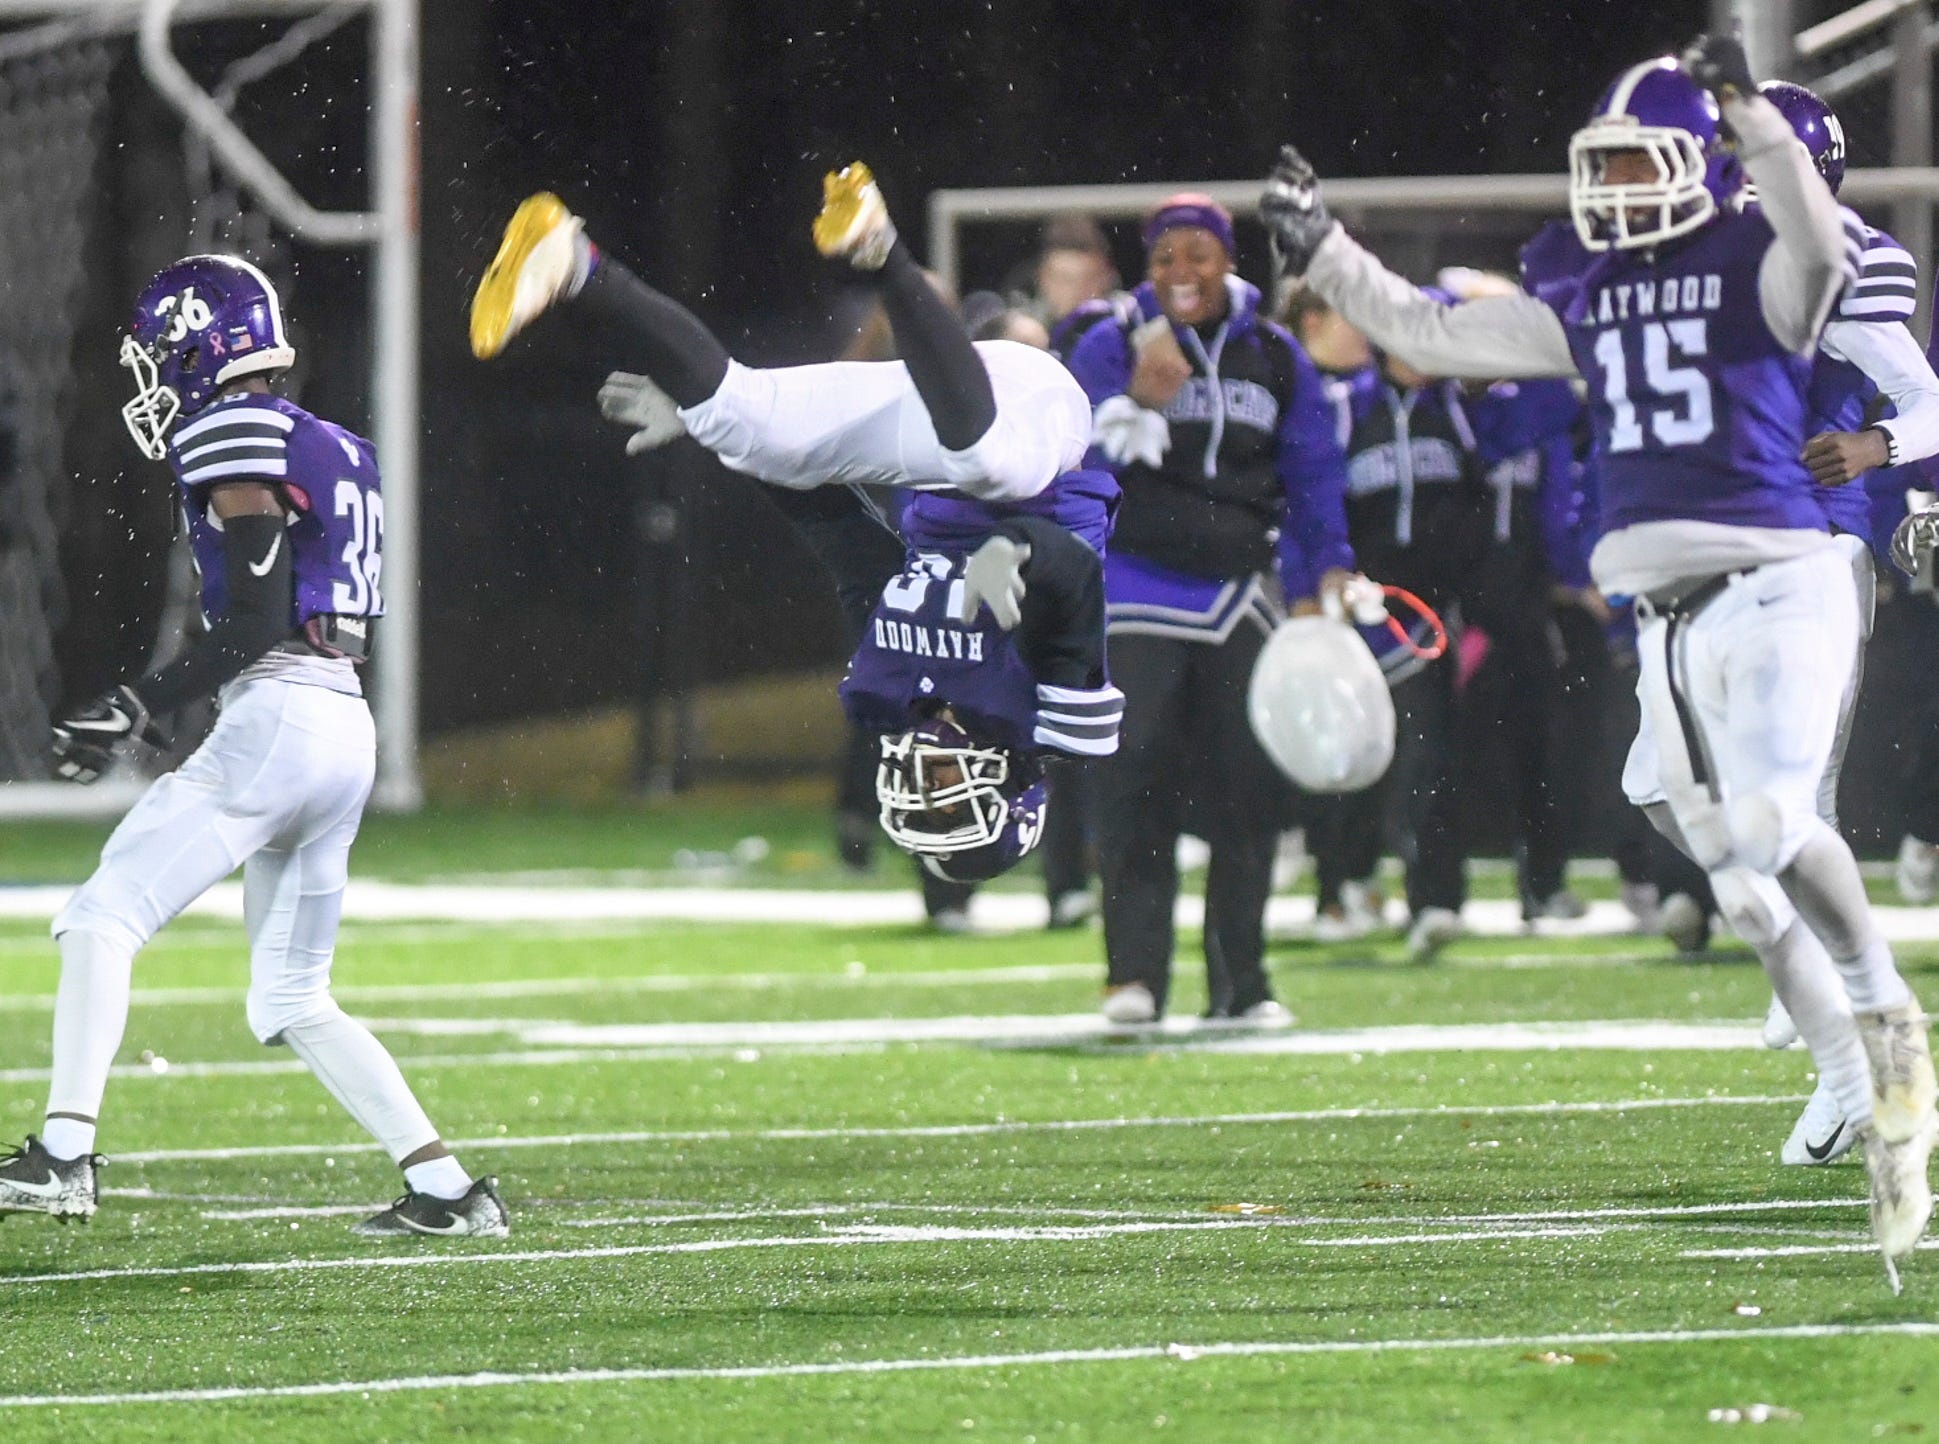 Haywood's Hollis Lanier turns a backflip after Haywood defeated Springfield, 49-14, during their Class 4A semifinal game, Friday, November 23.